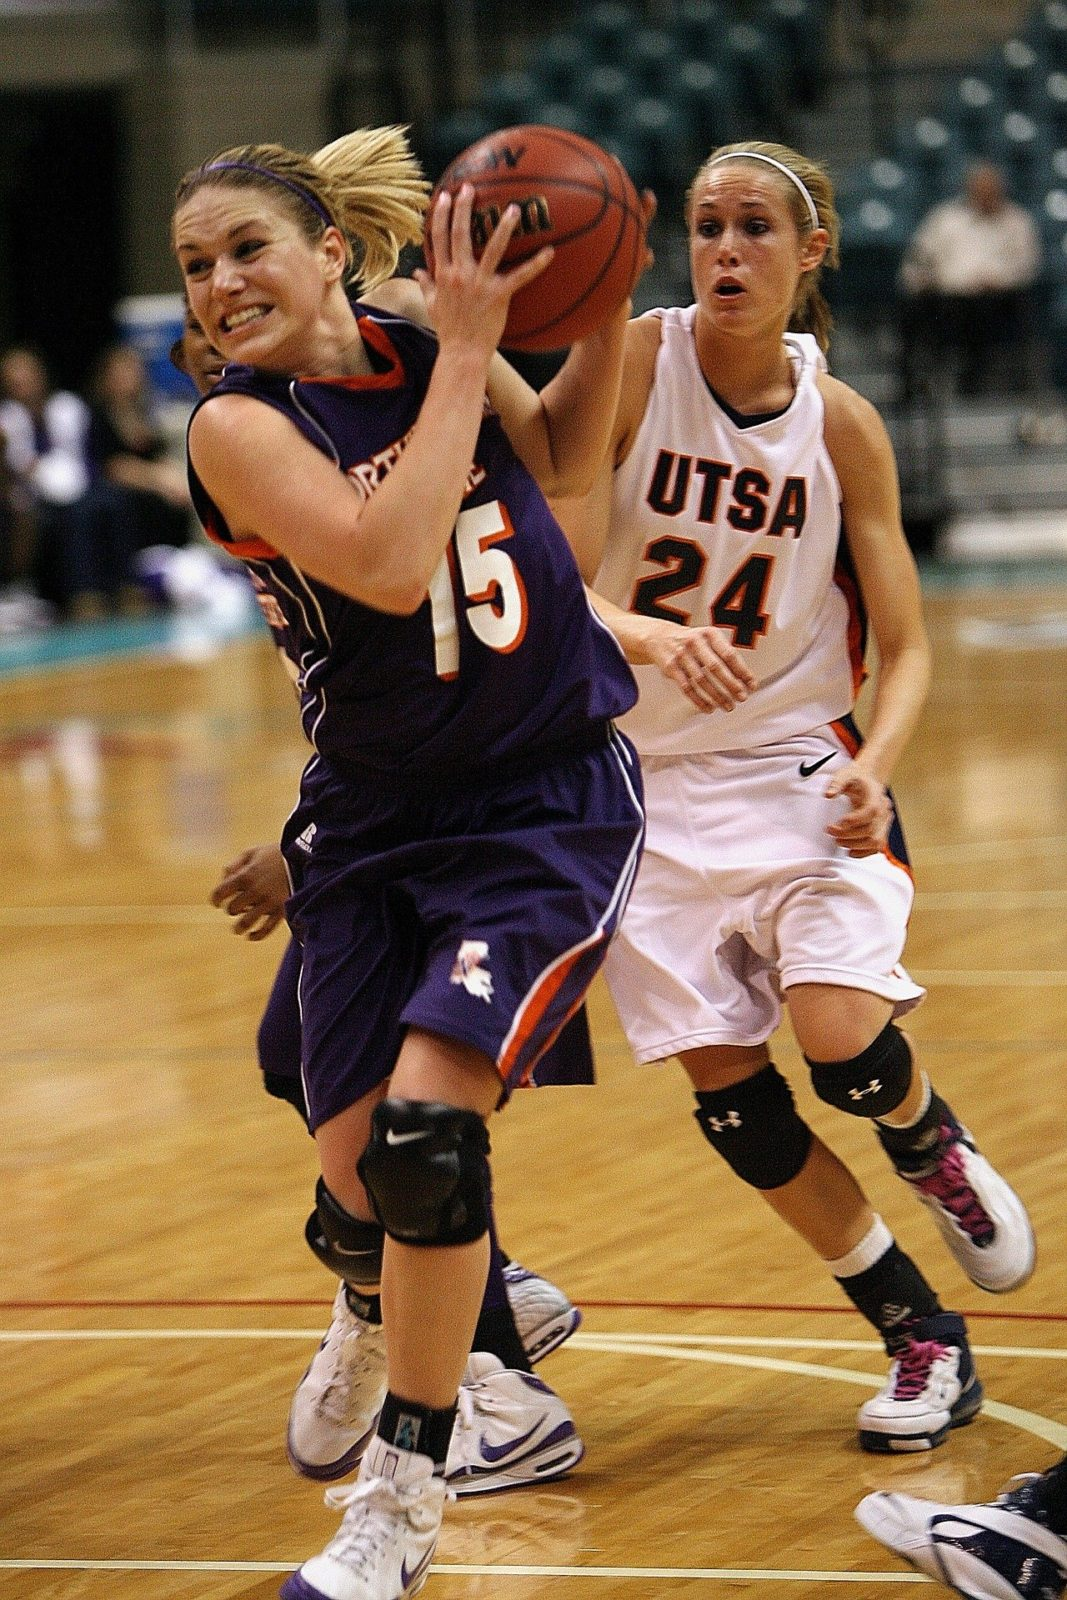 Student athletes playing on the court during a game.